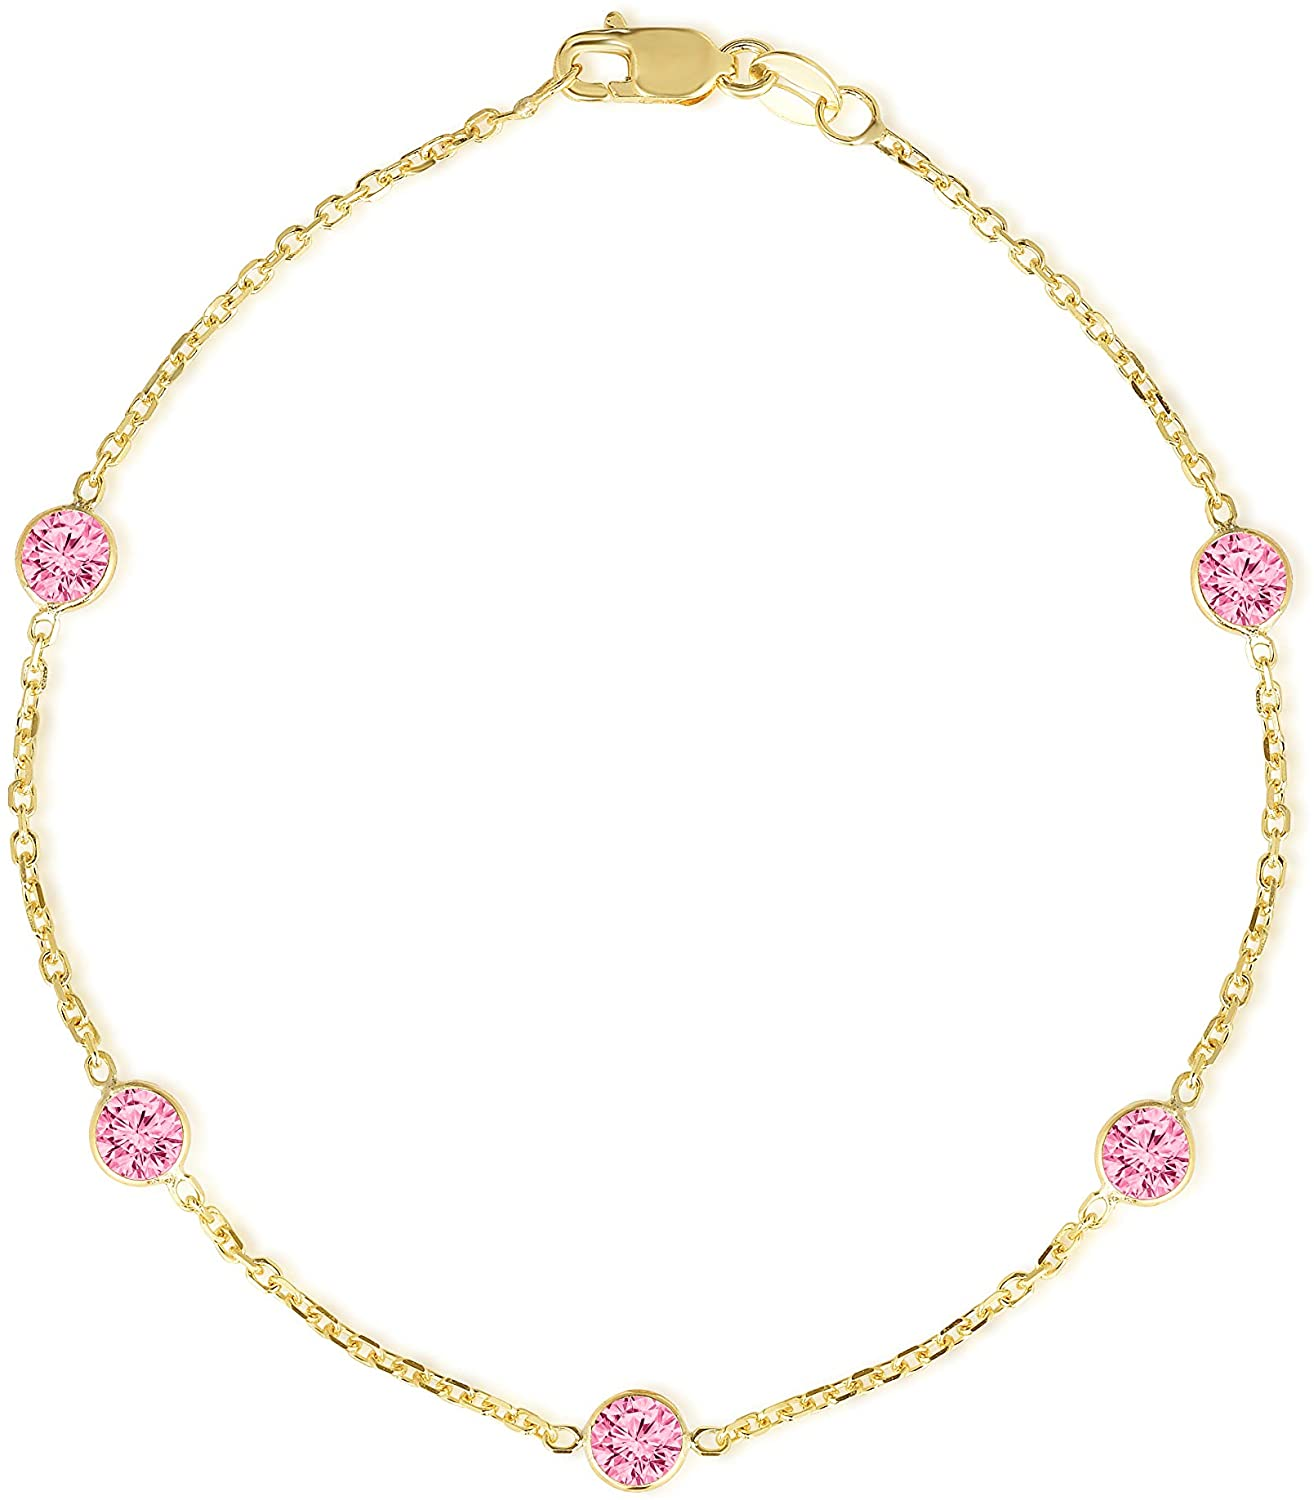 Floreo 14k Yellow Gold Round Created Pink Tourmaline (4mm) October Birthstone Cable Anklet, 10 inch